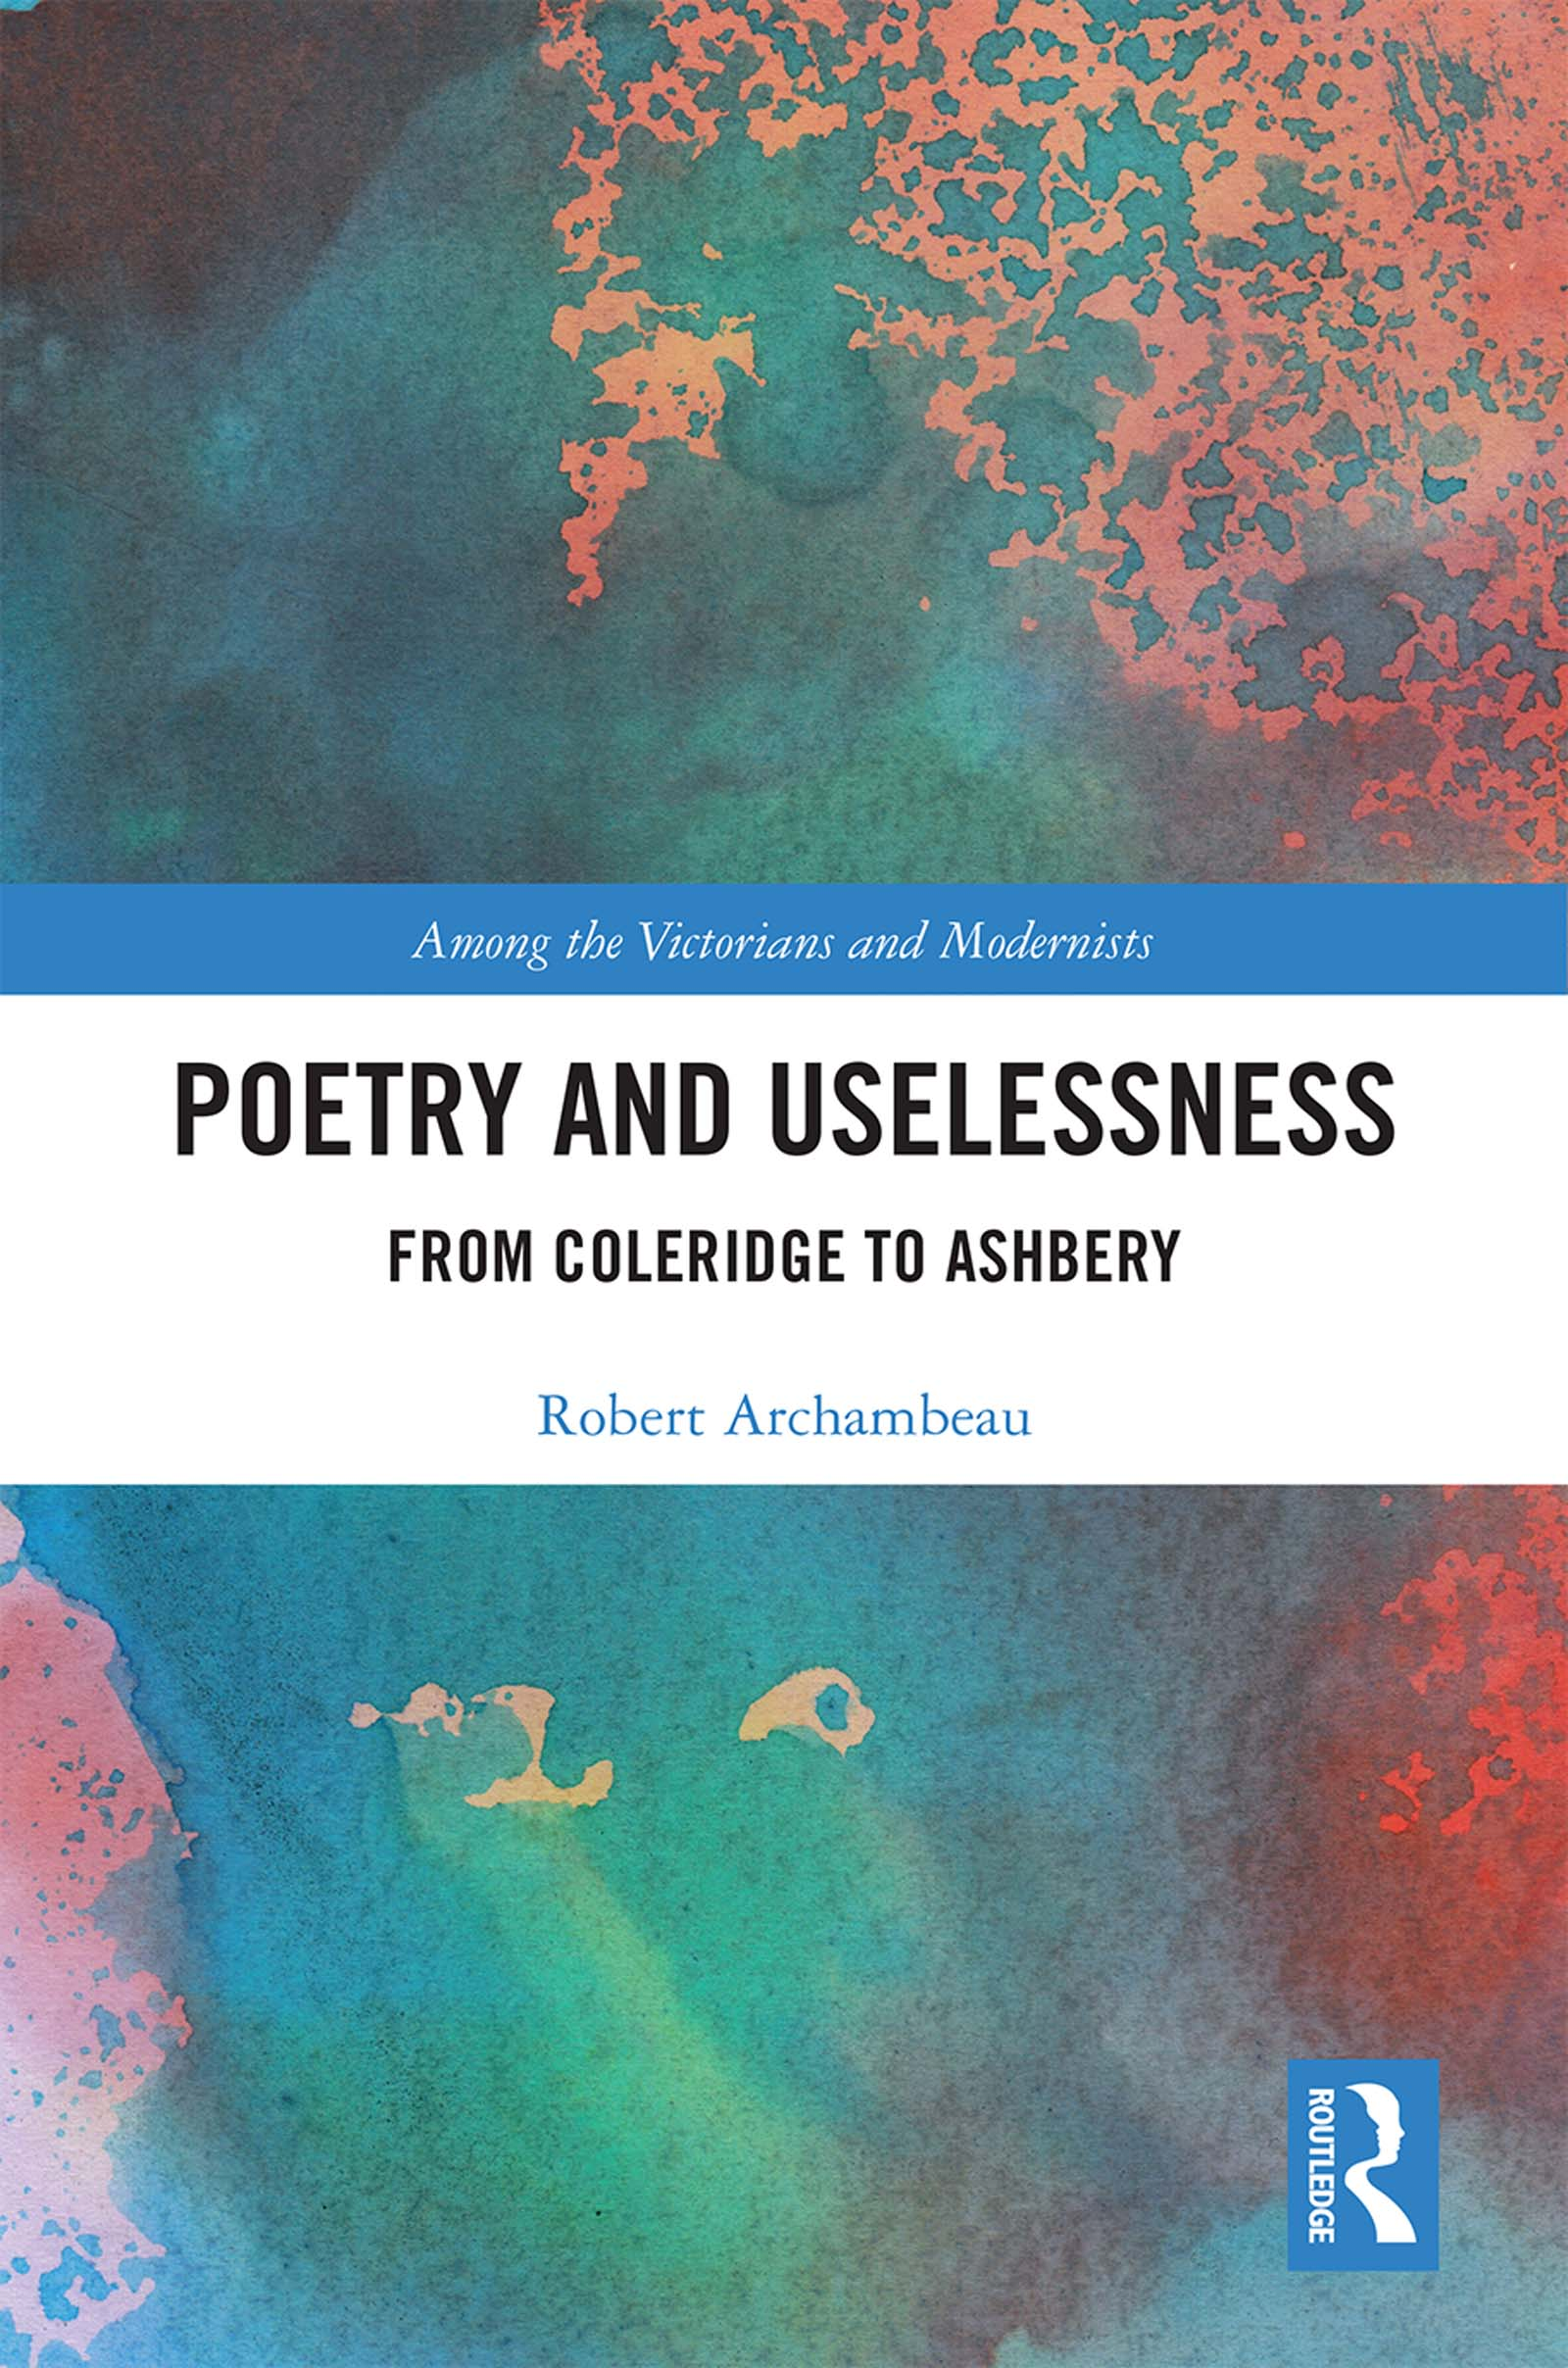 Poetry and Uselessness: From Coleridge to Ashbery book cover